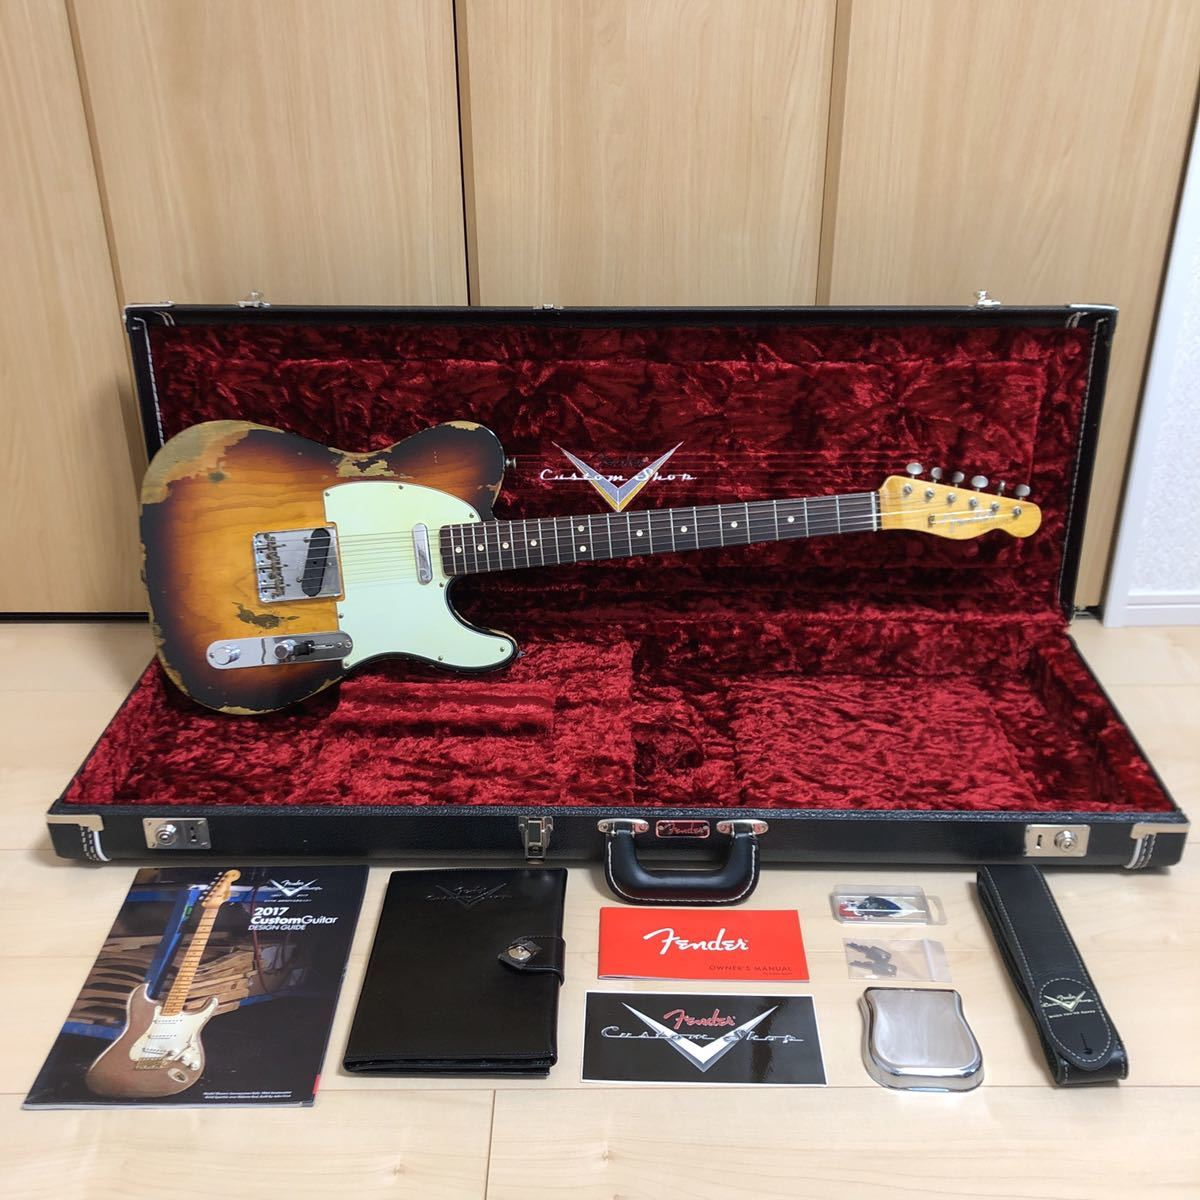 美品 Fender Custom Shop 2018 NAMM Display #115 1963 Telecaster Heavy Relic Aged 3 Color Sunburst マテウス・アサト風 Mateus Asato